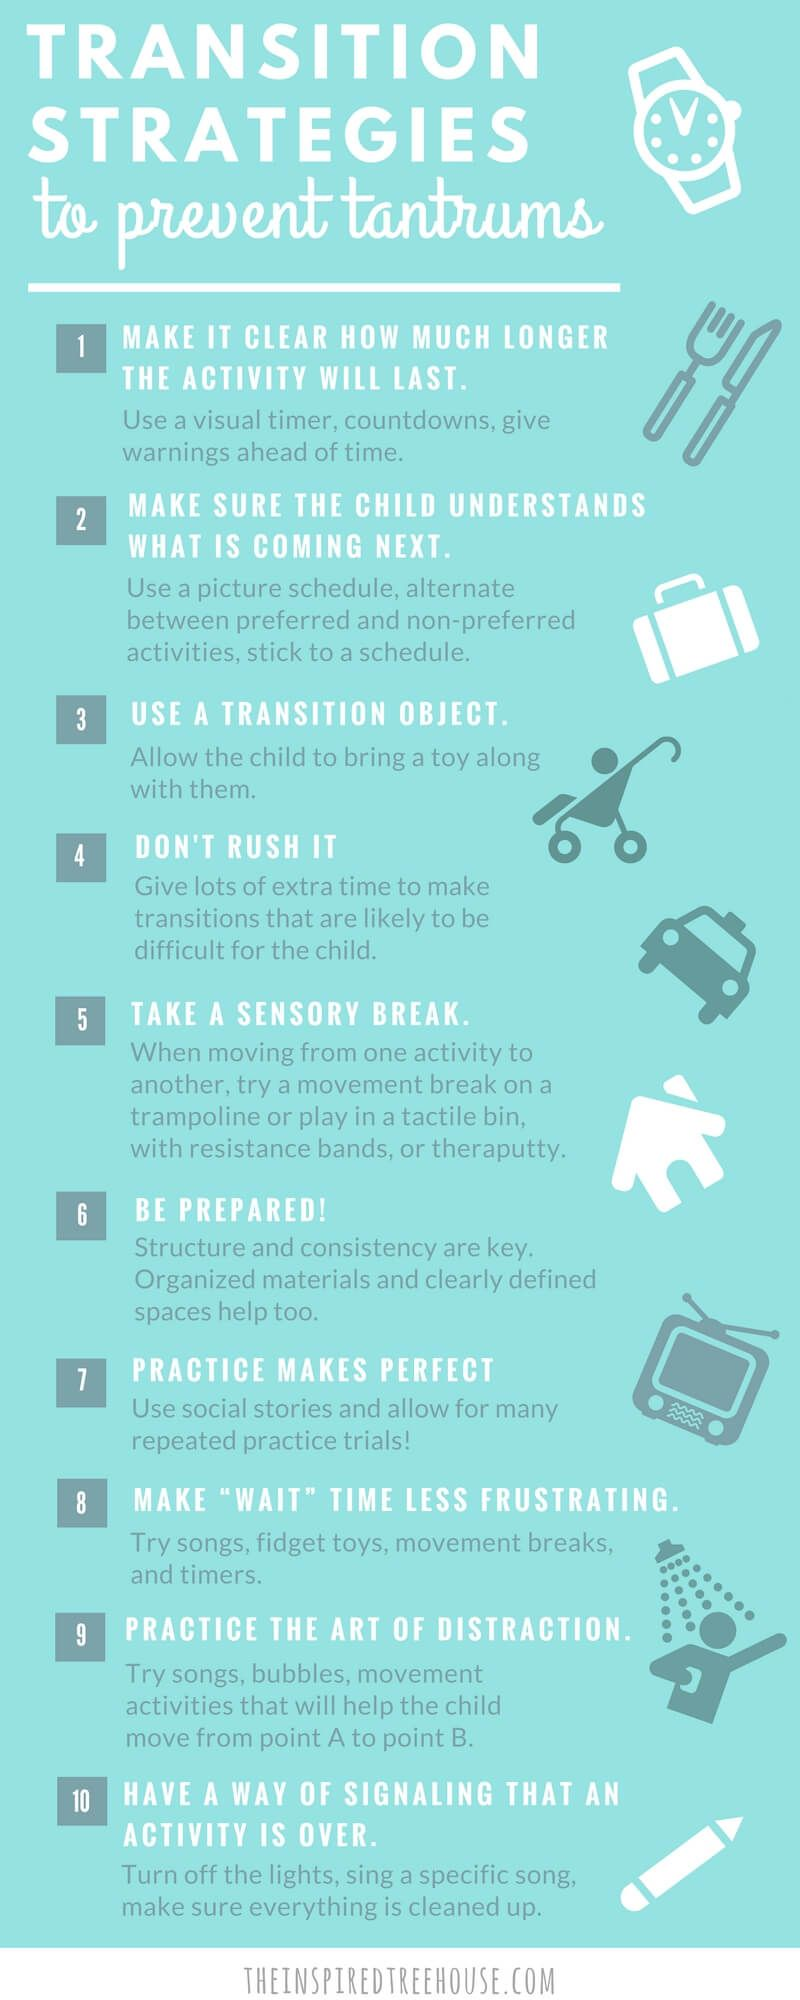 10 Calming Techniques and Transition Strategies for Kids | The